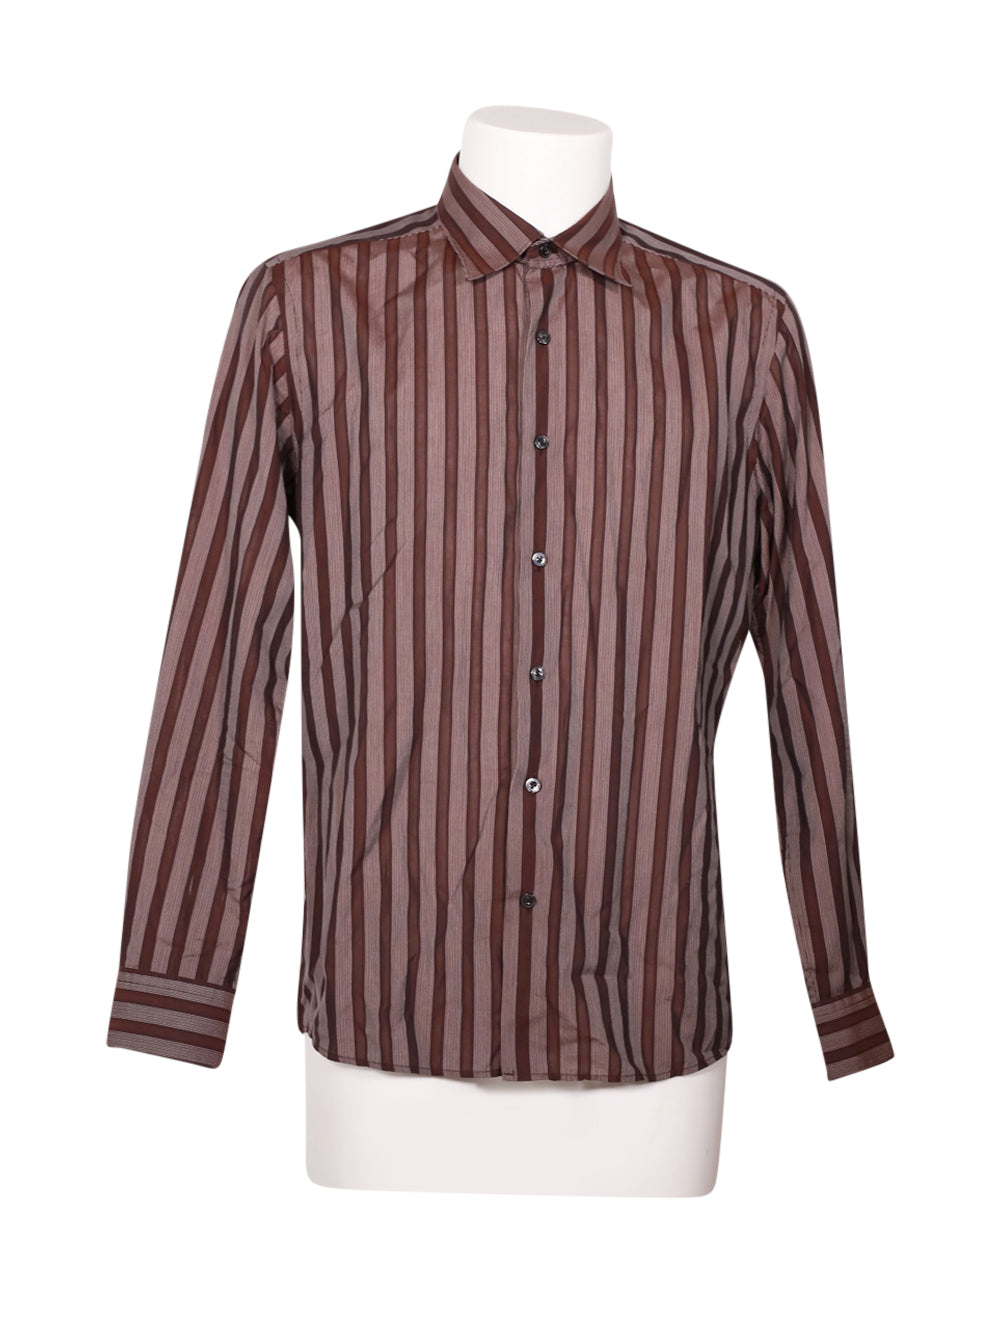 Front photo of Preloved barbieri Brown Man's shirt - size 40/L